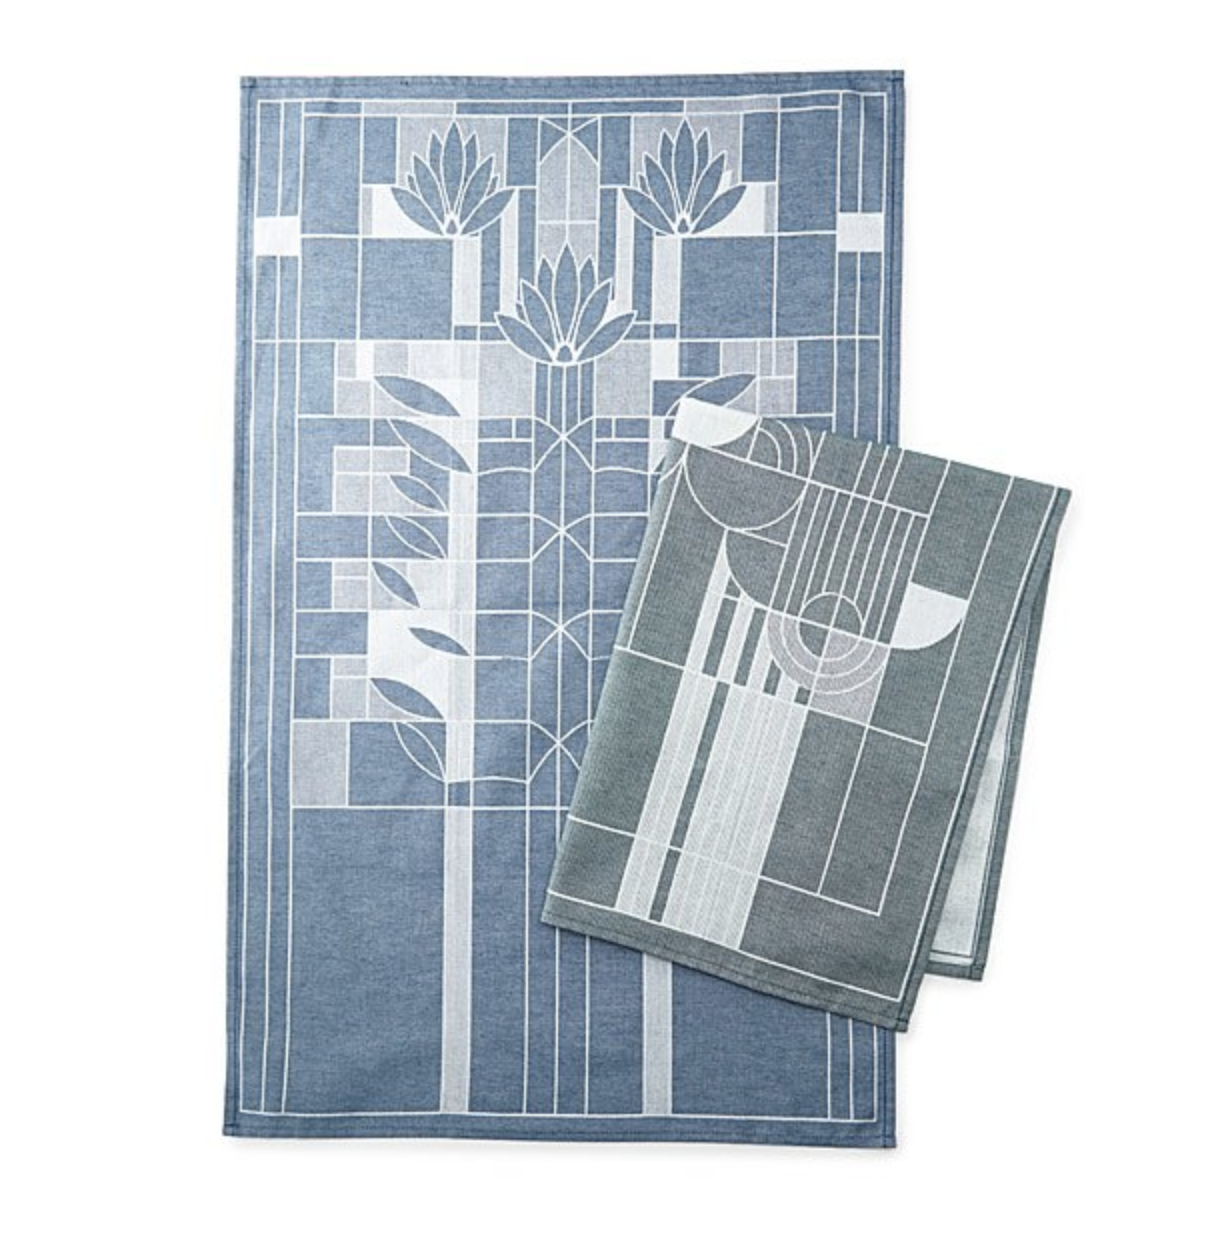 Tea towels are essential baking tools for bread baking and rolled cake making—and these towels sporting the famed architect's legendary designs are (almost) too pretty to put to work.